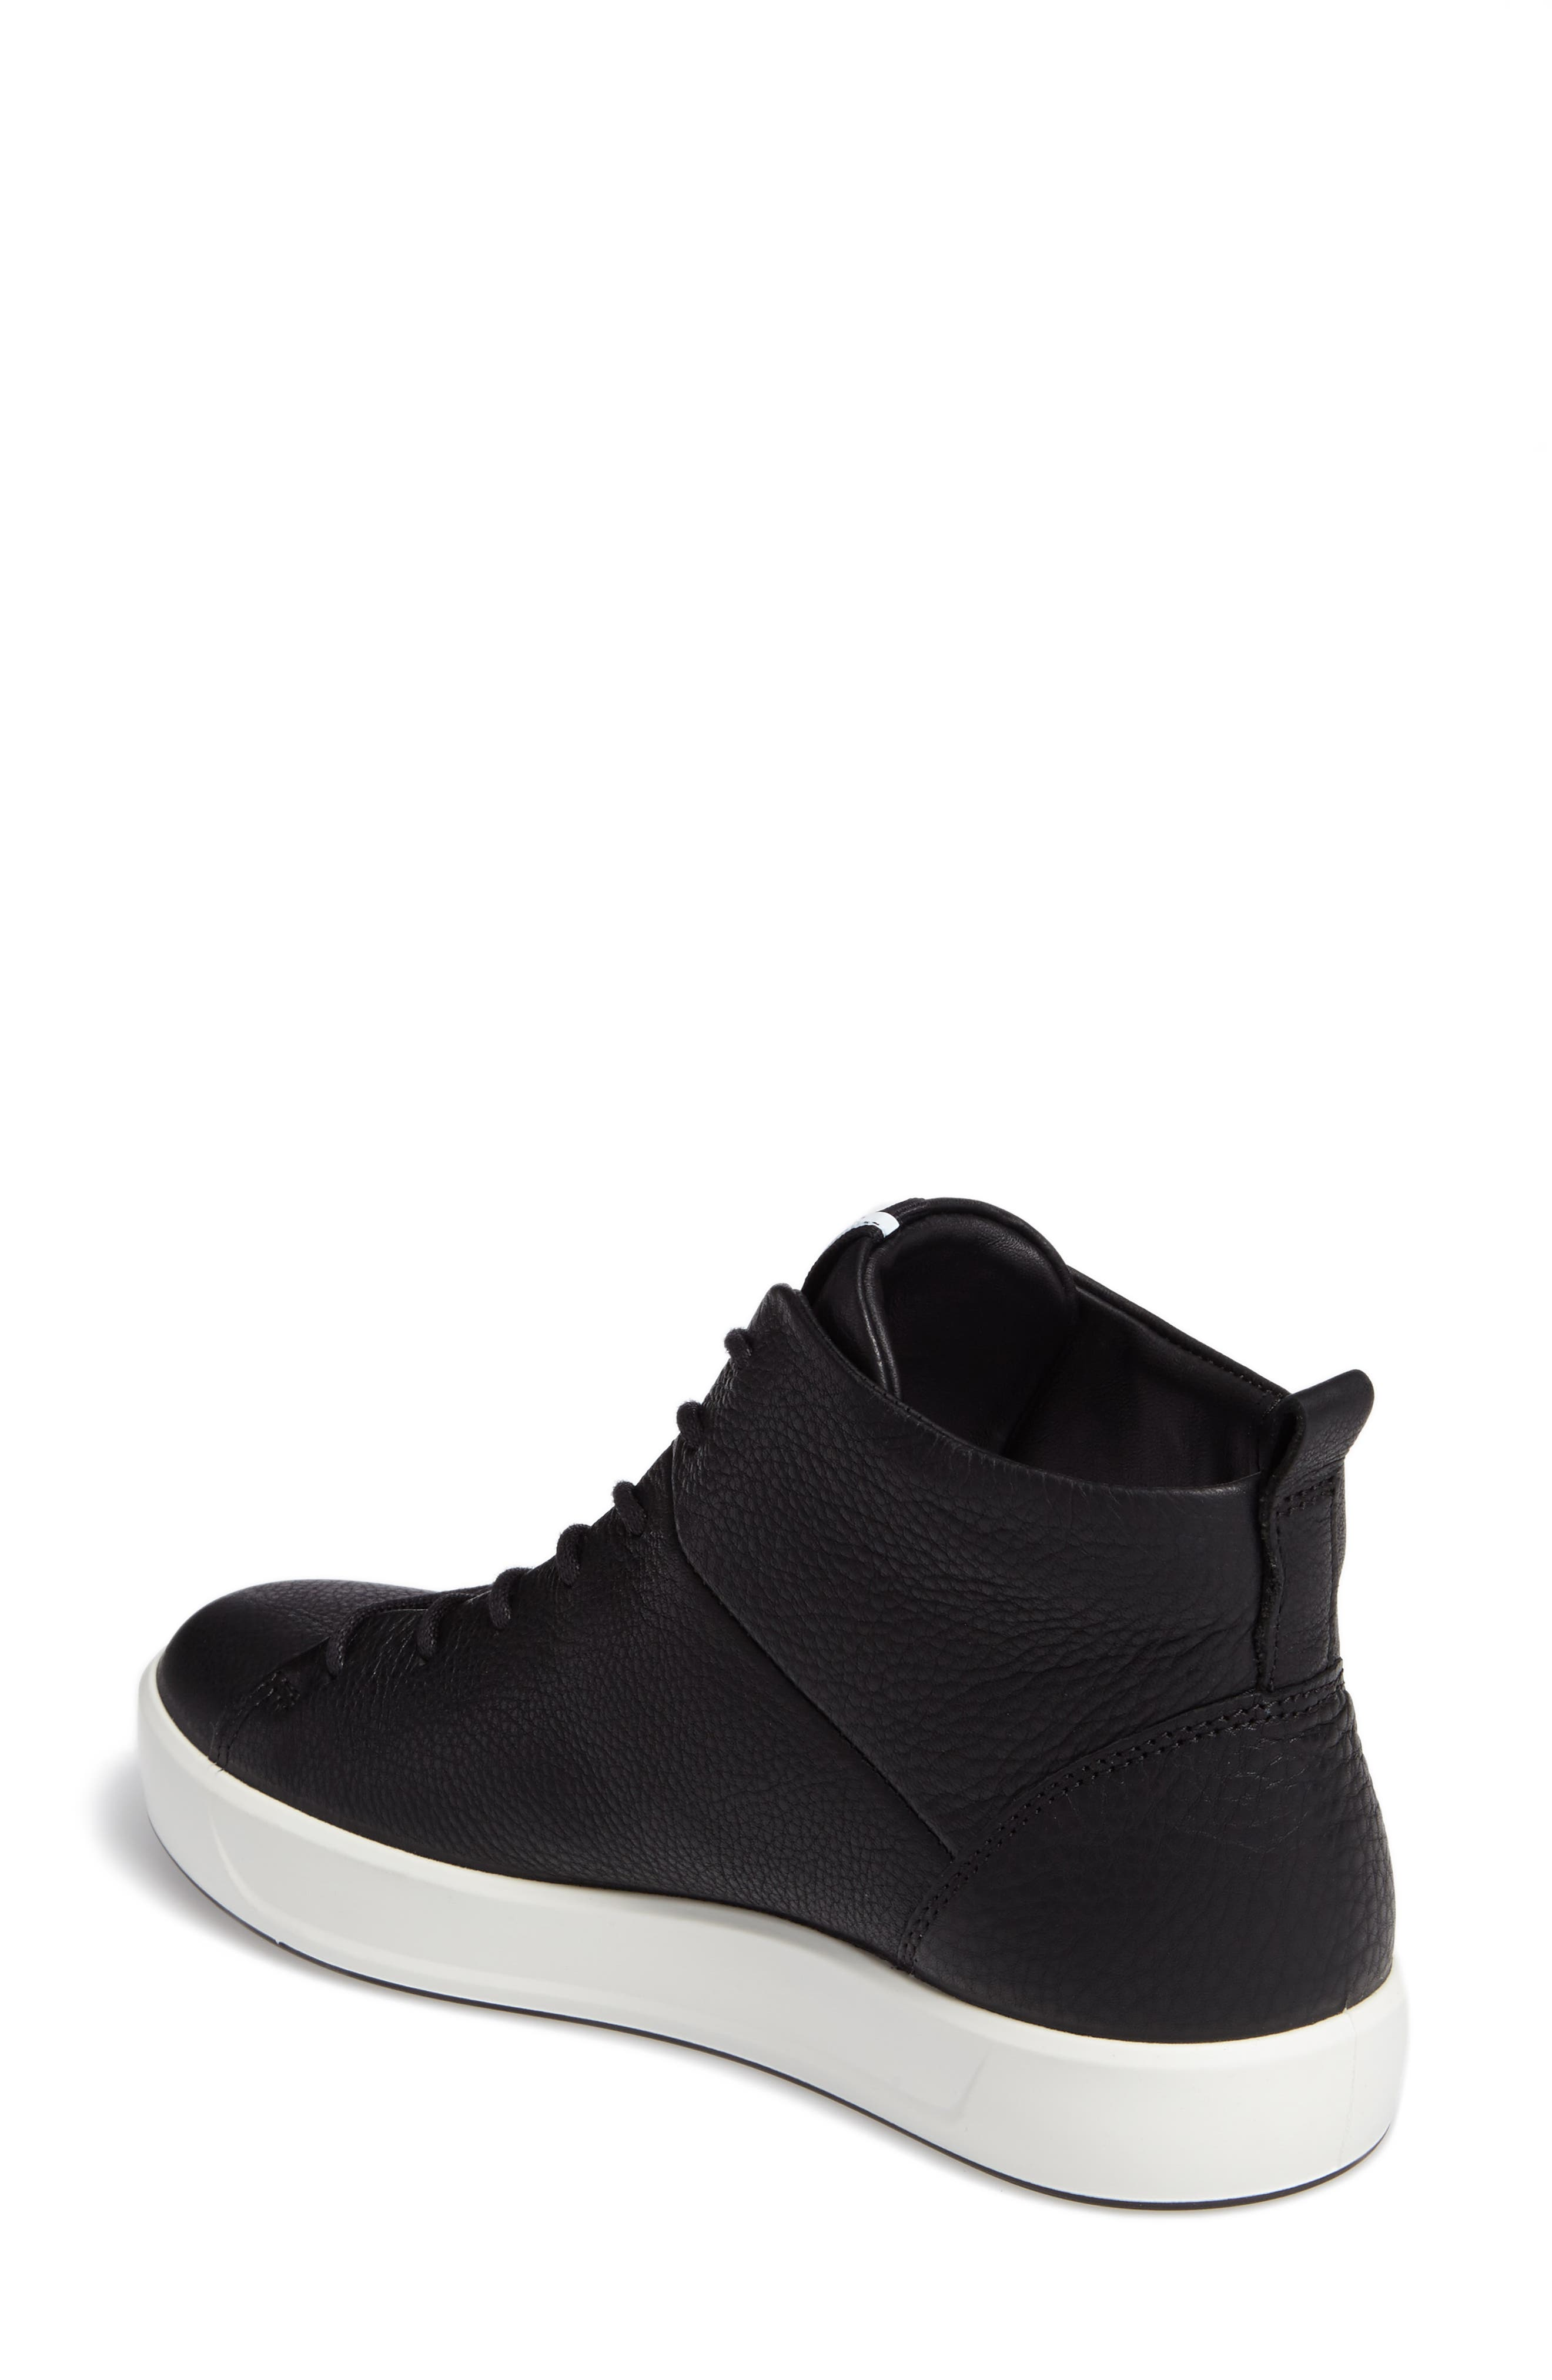 Soft 8 High Top Sneaker,                             Alternate thumbnail 2, color,                             Black Leather